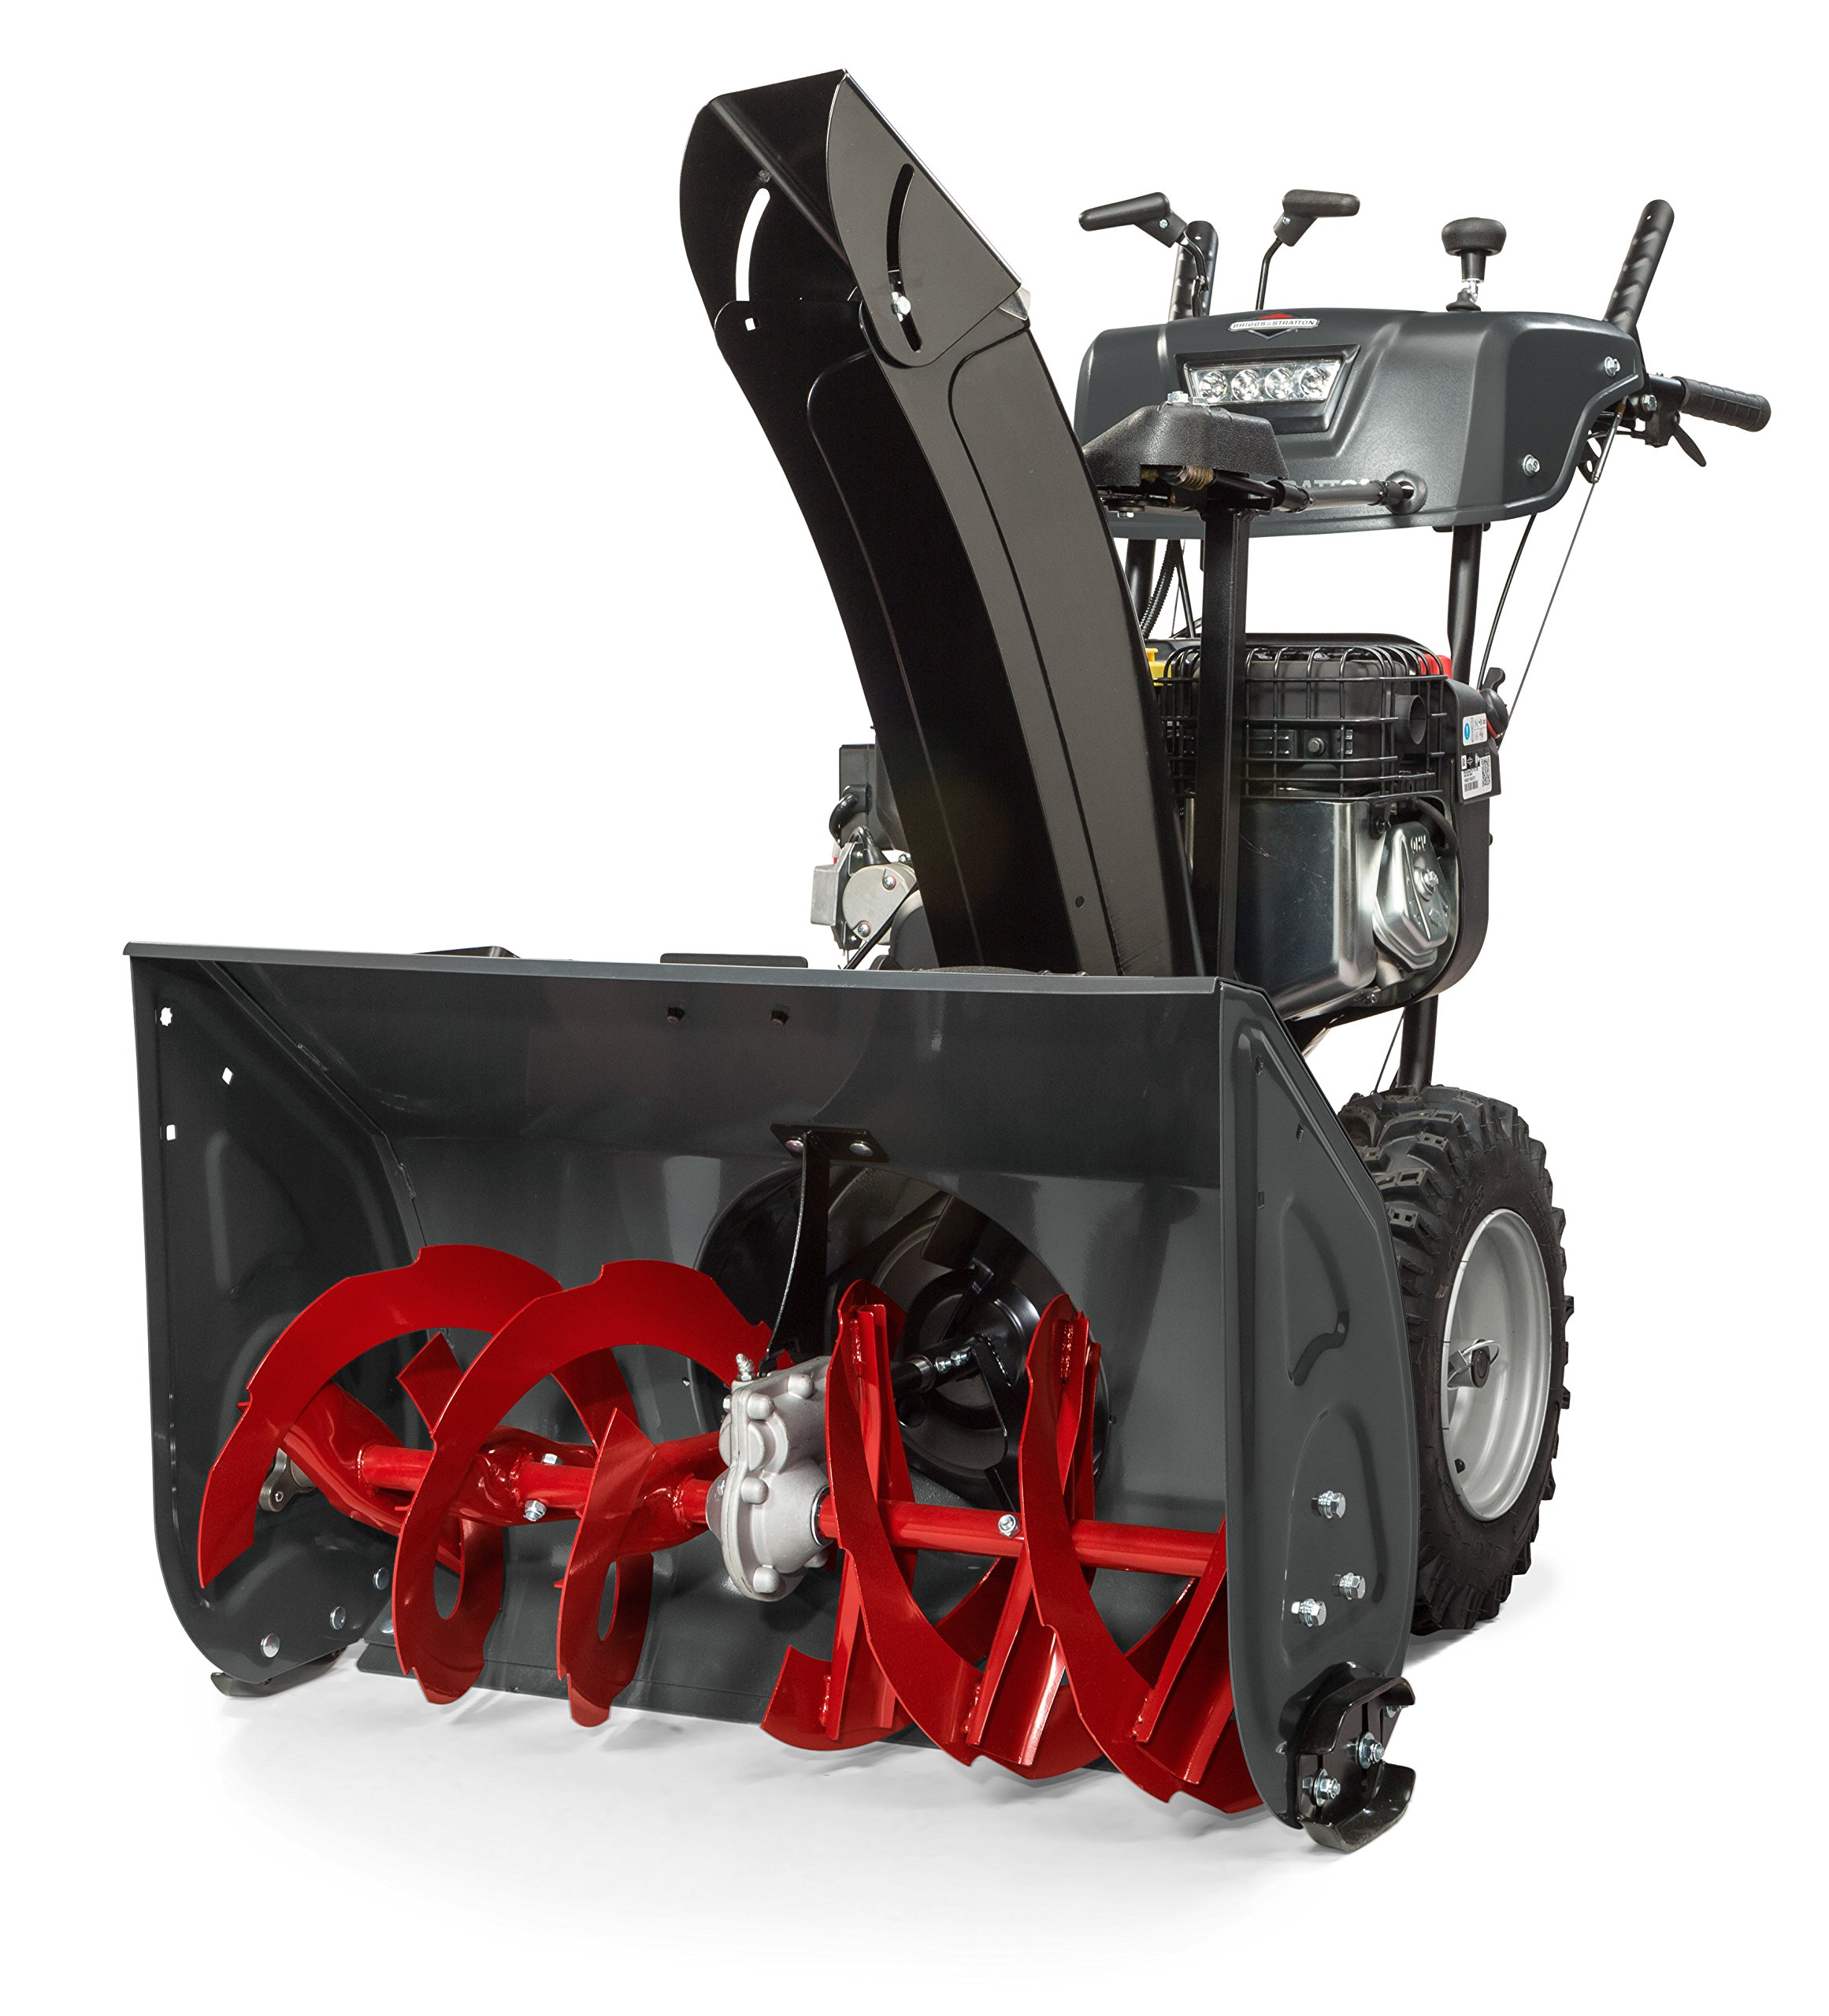 Briggs & Stratton 1530MDS Dual Stage Snowthrower Snow Thrower, 306cc by Briggs & Stratton (Image #7)